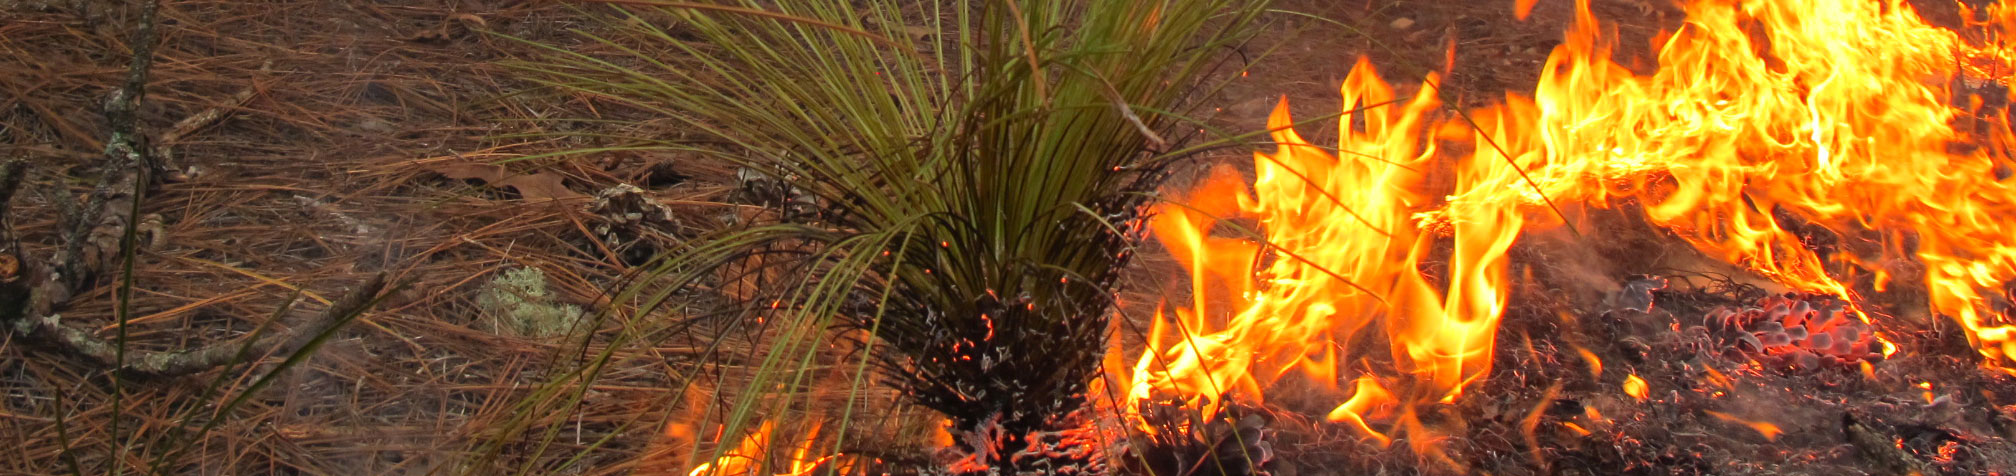 Fire in Longleaf Pine forest